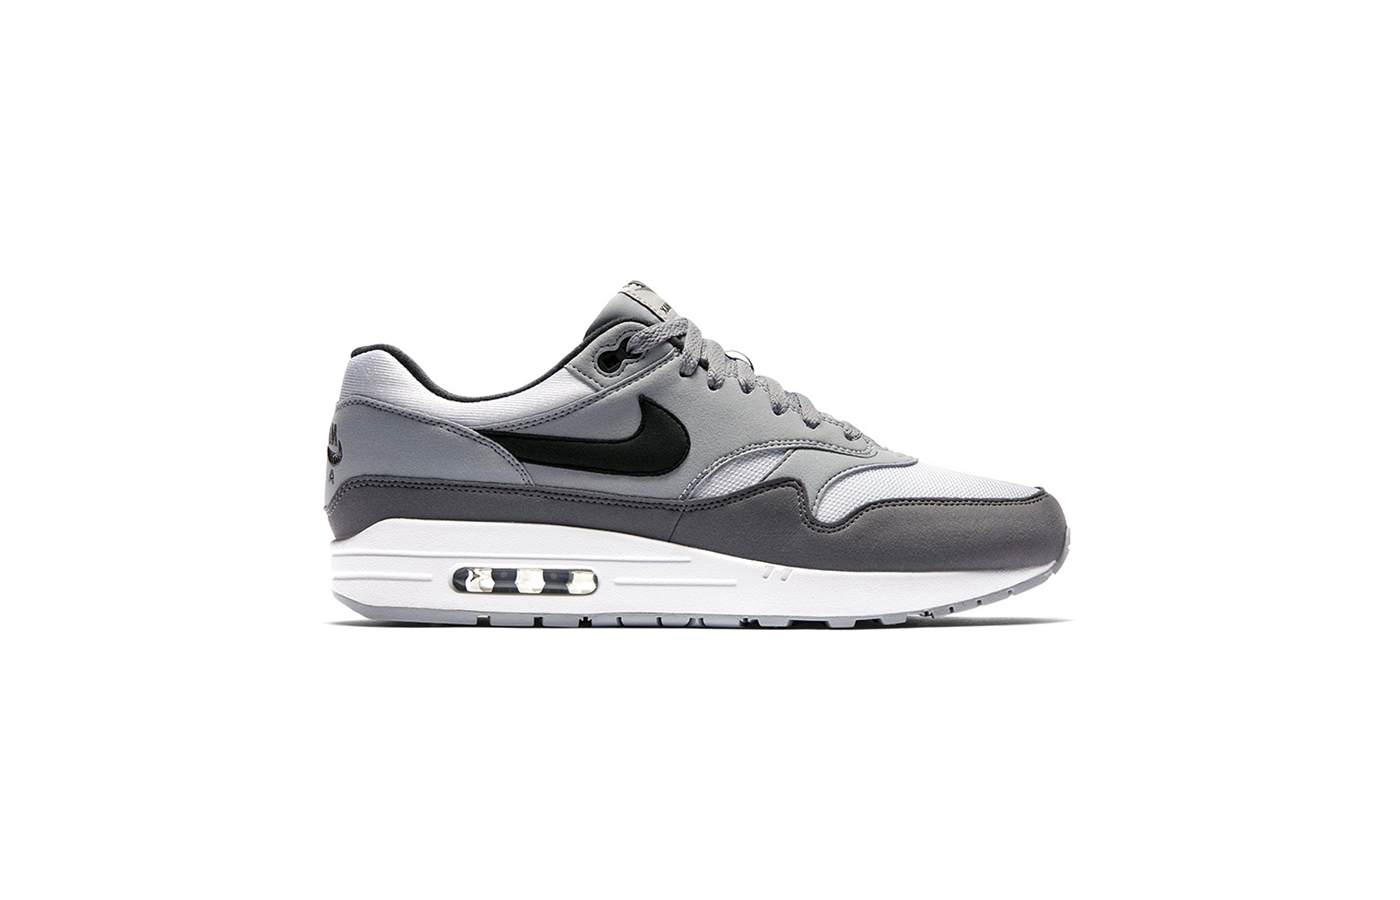 Nike Air Max 1 Gym Pack